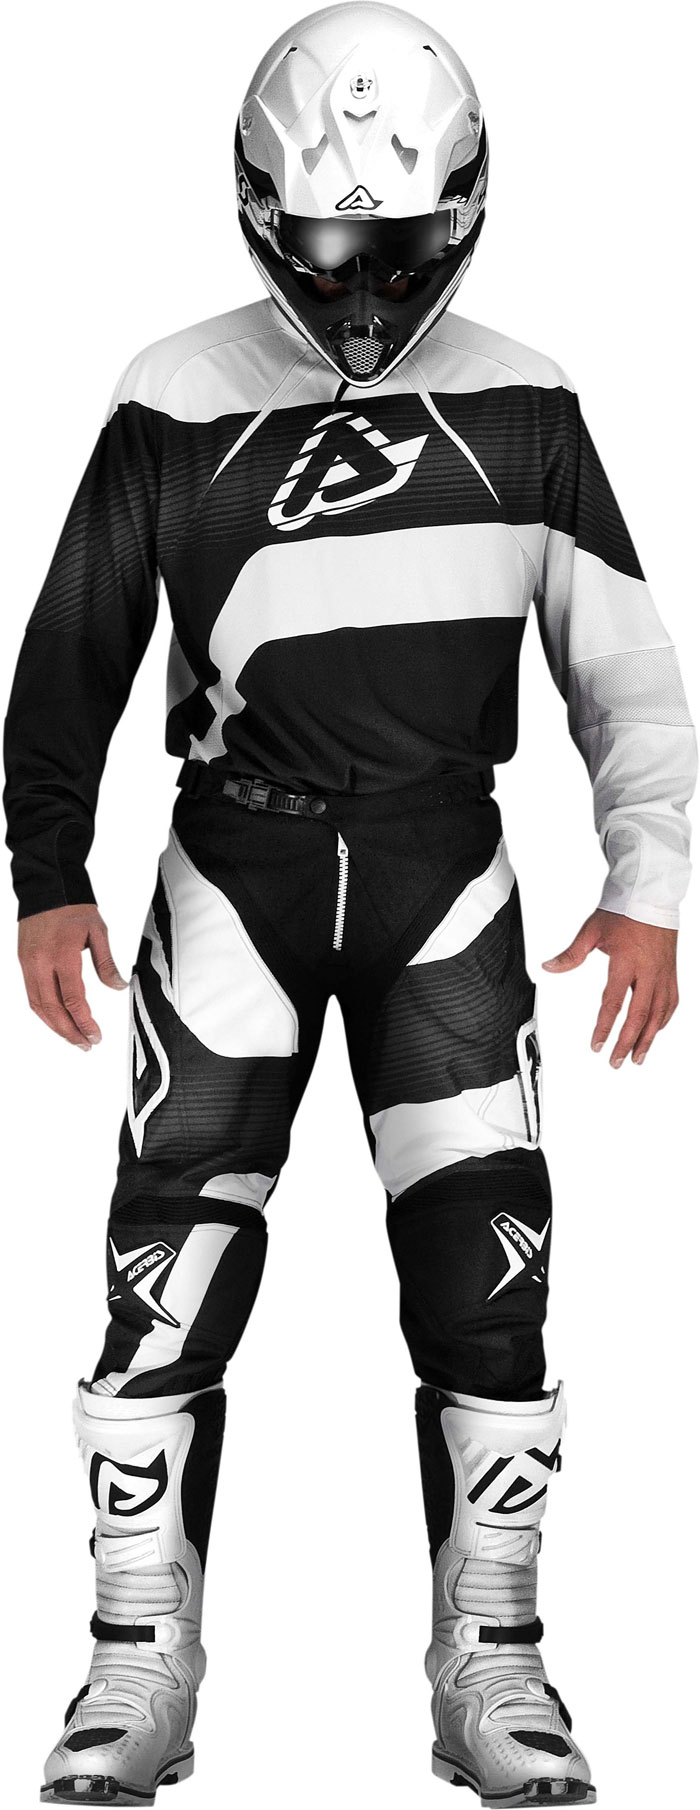 Acerbis Impact Jersey cross Big Boy